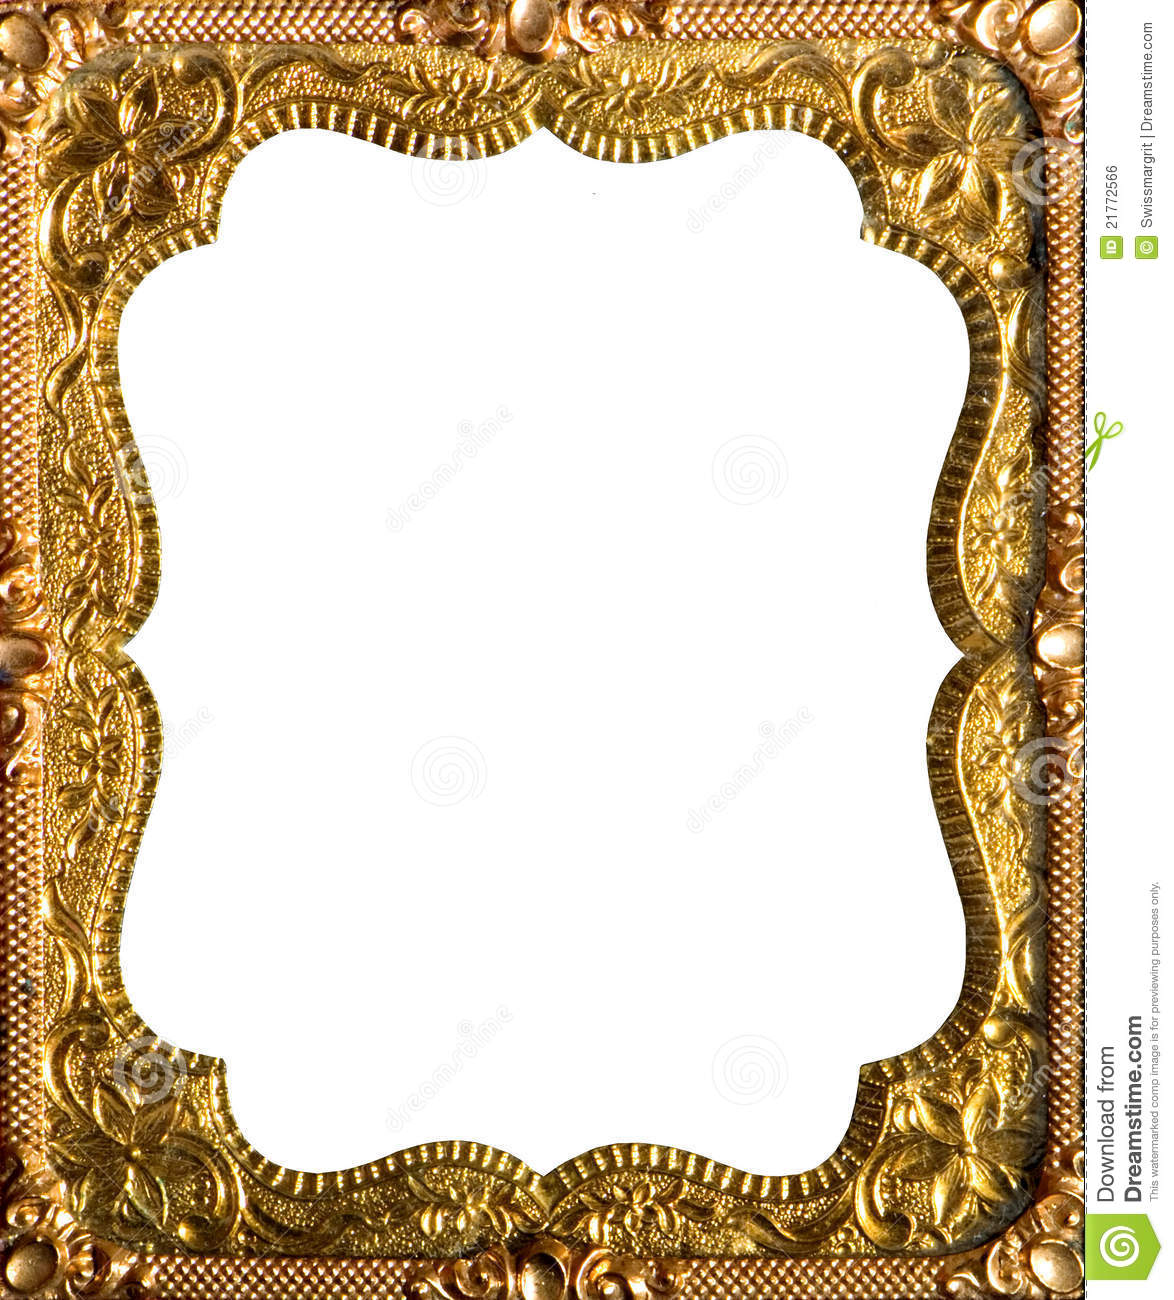 49+ Clipart Picture Frames   ClipartLook